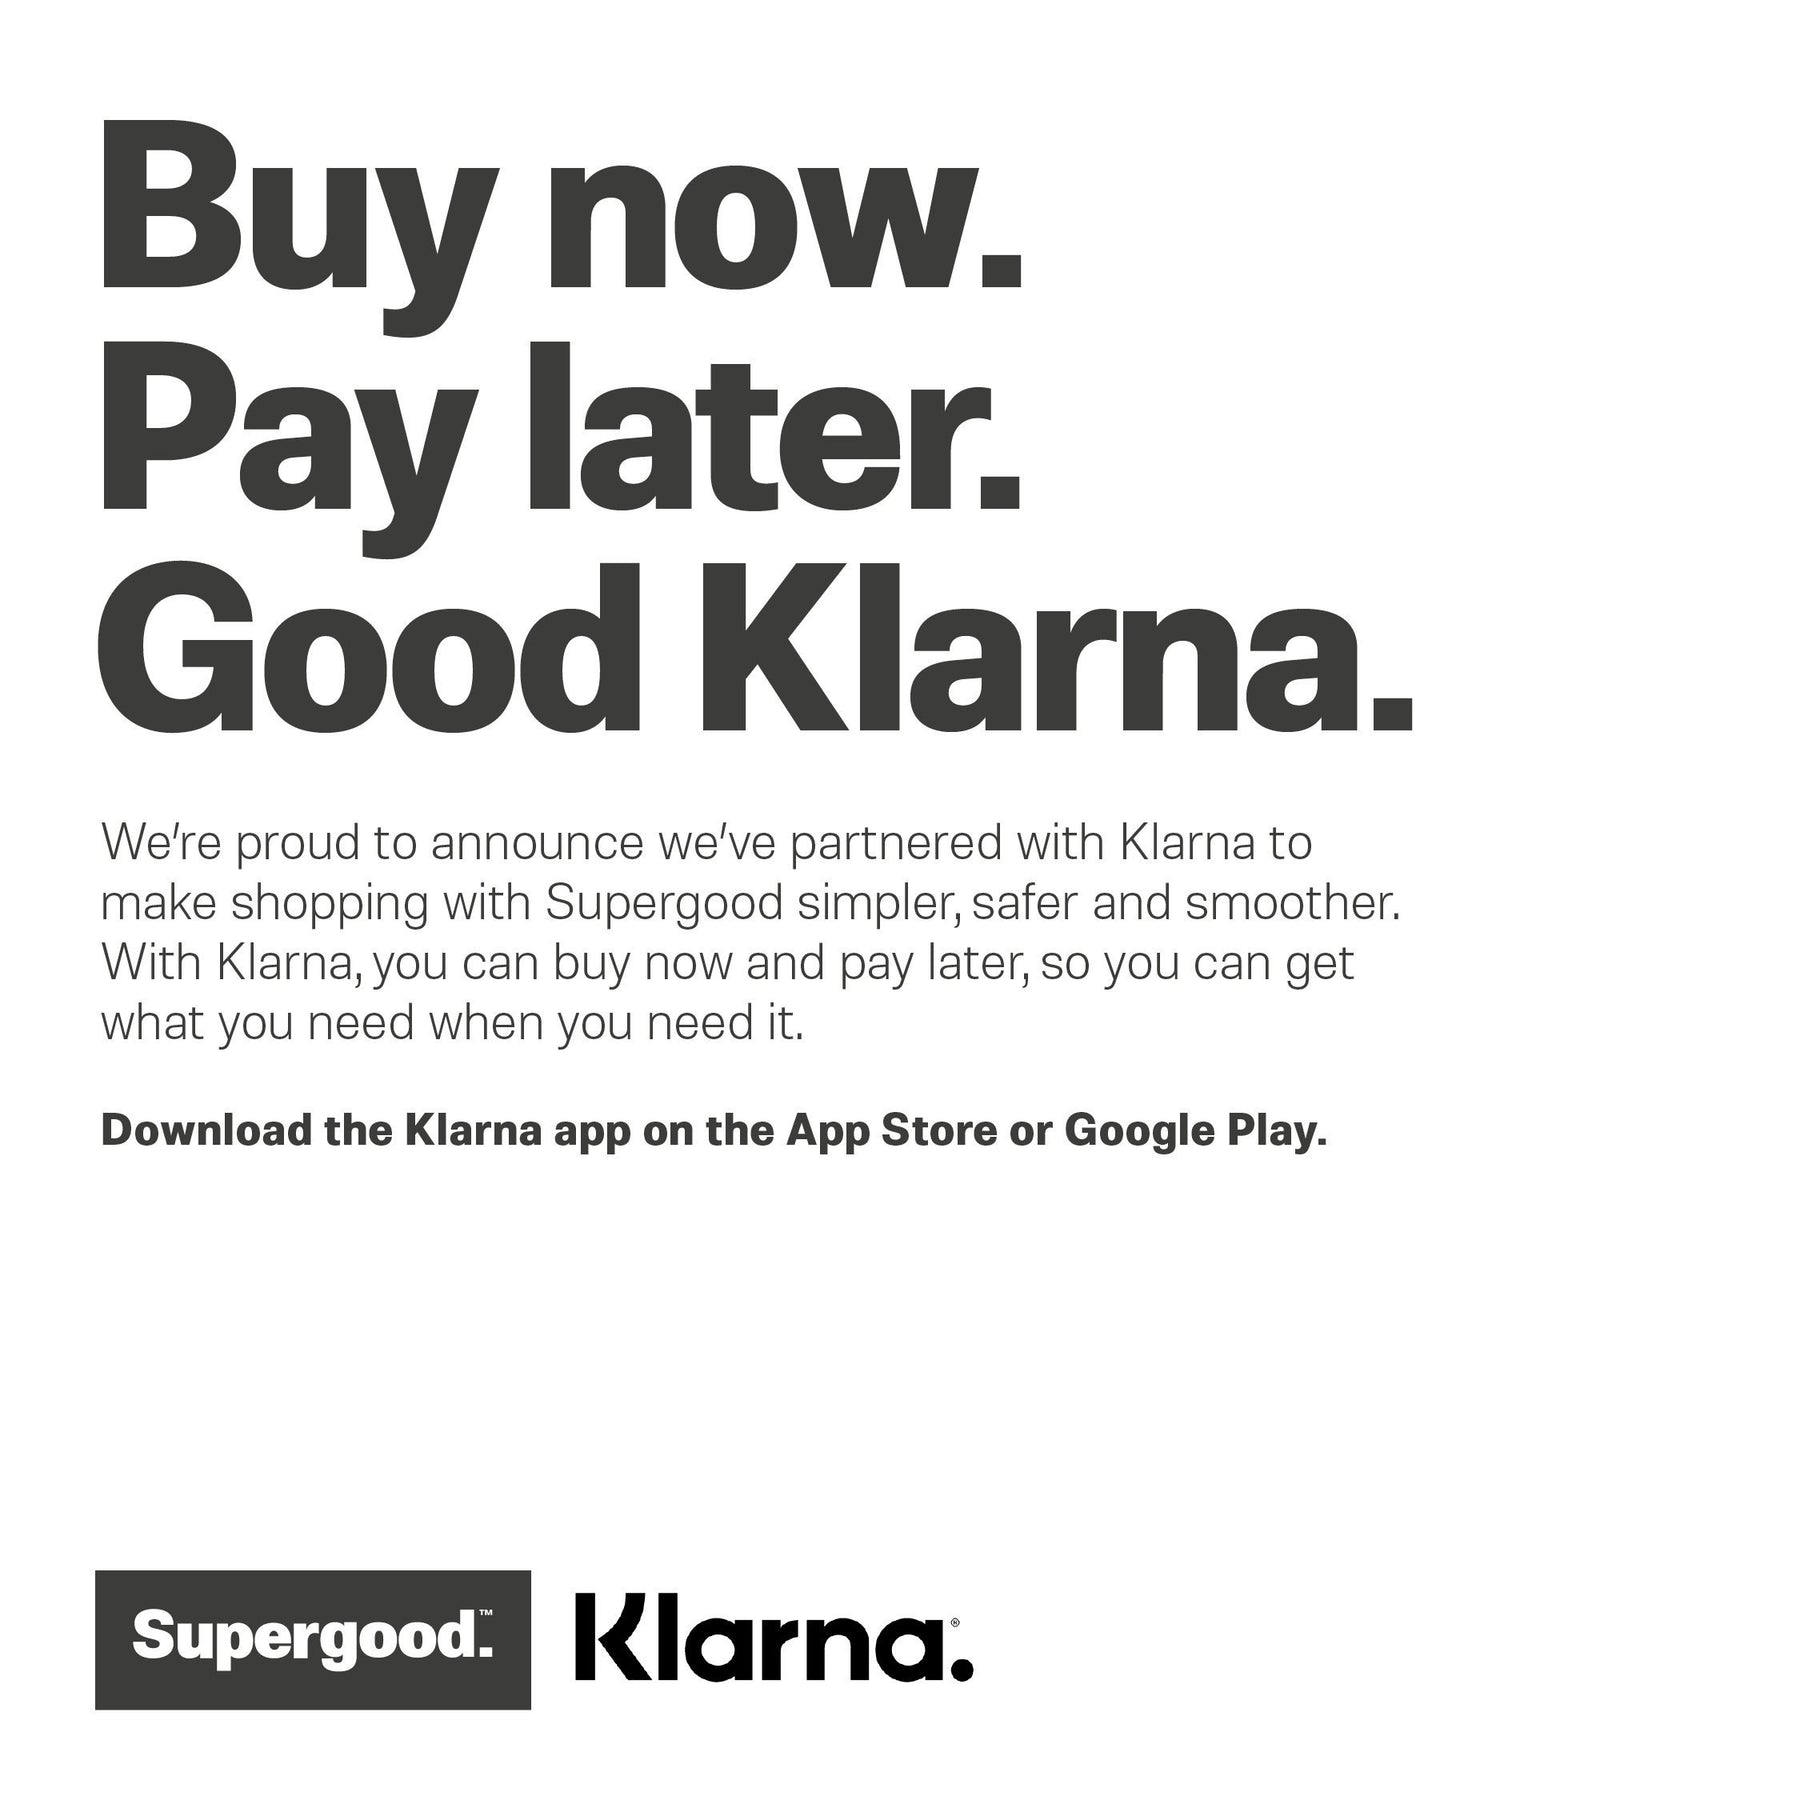 News-Buy now. Pay later. Good Klarna. | We Are Supergood.